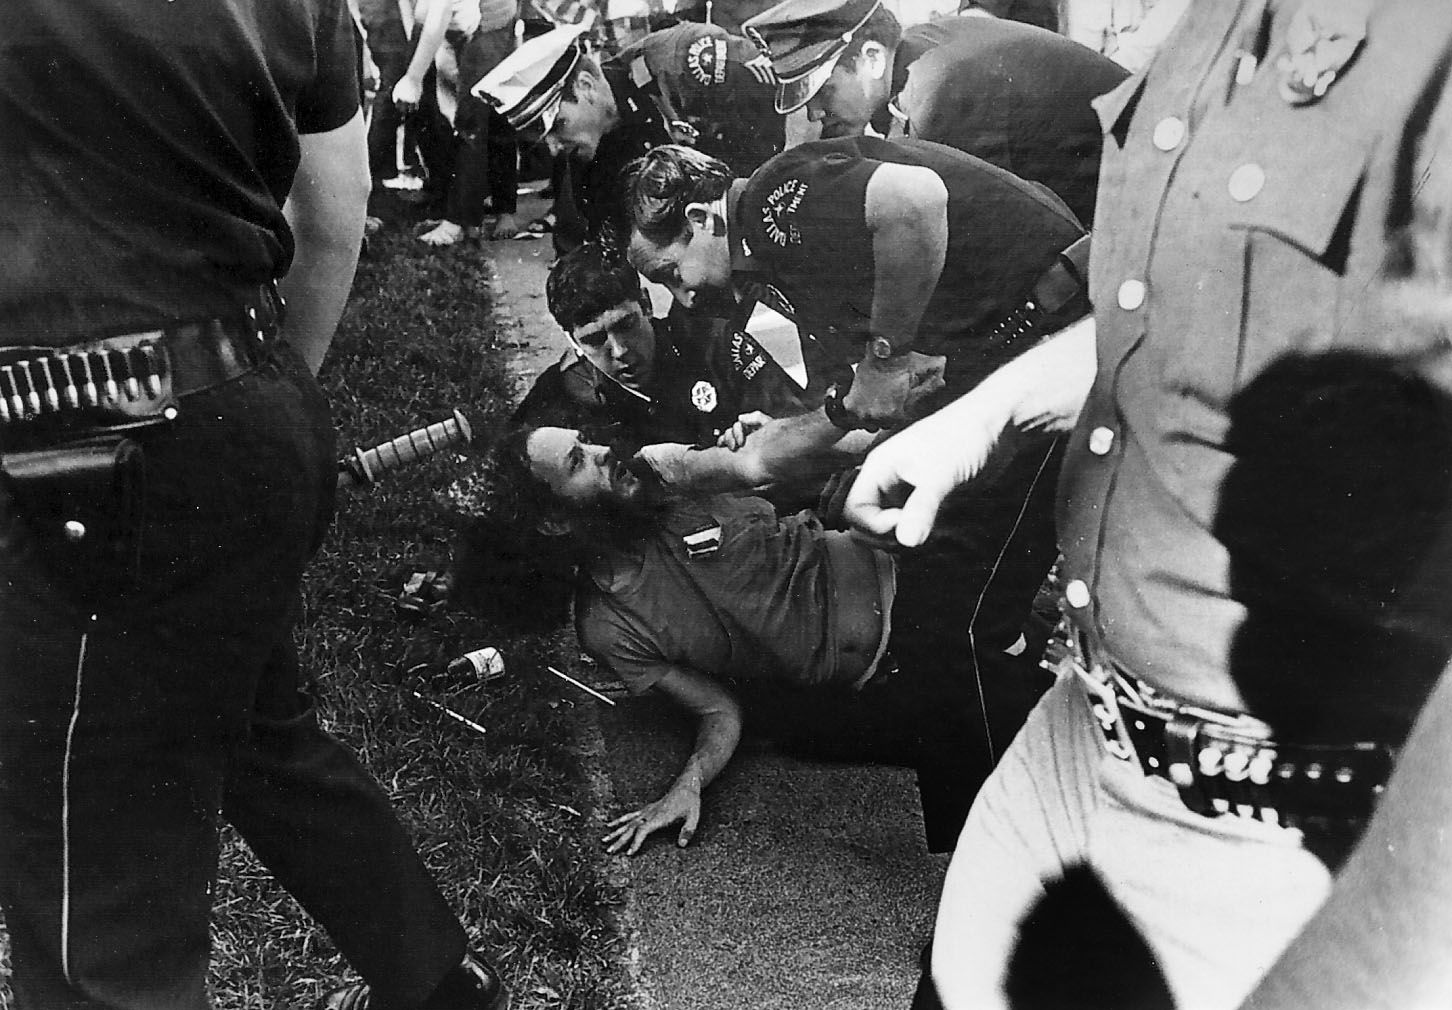 """Brent Stein, a.k.a. """"Stoney Burns,"""" is arrested April 12, 1970 by Dallas Police officers at Lee Park. The Dallas Morning News at the time reported that """"a clash between law officers and young people occurred when police tried to arrest several hippie-types"""" at the park."""